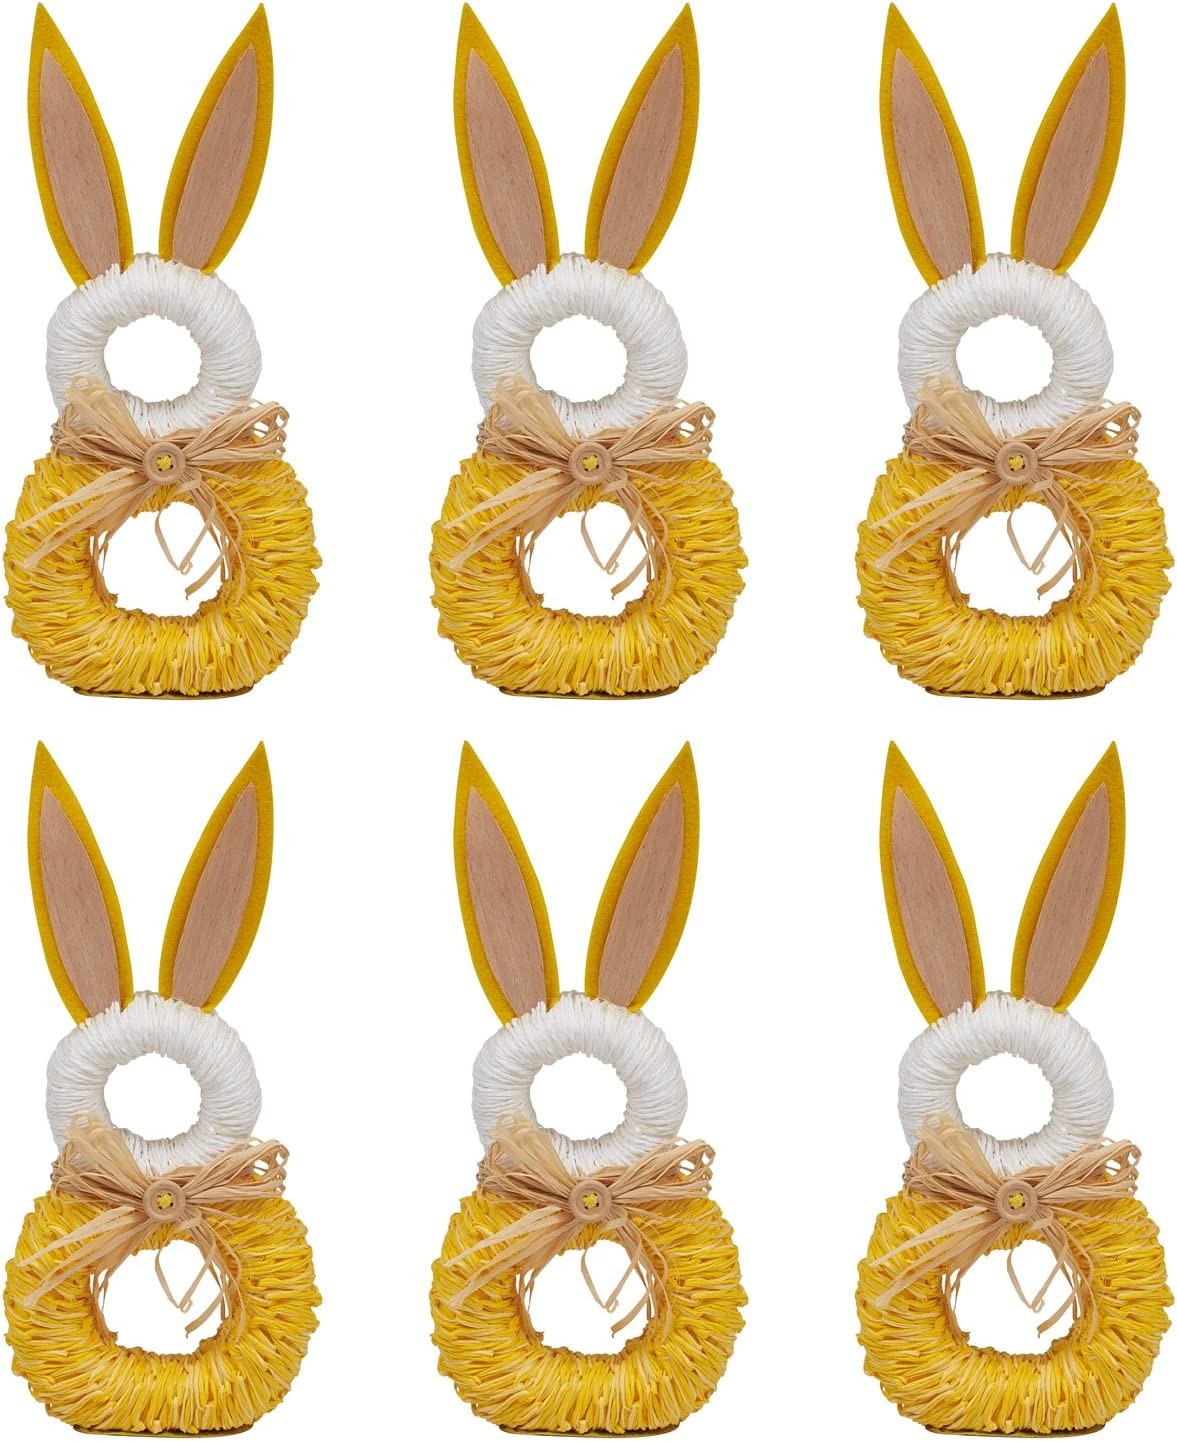 Themed Parties Baby Shower or Everyday Use-White Bunny Ears Set of 6 DII Napkin Rings for Easter Spring